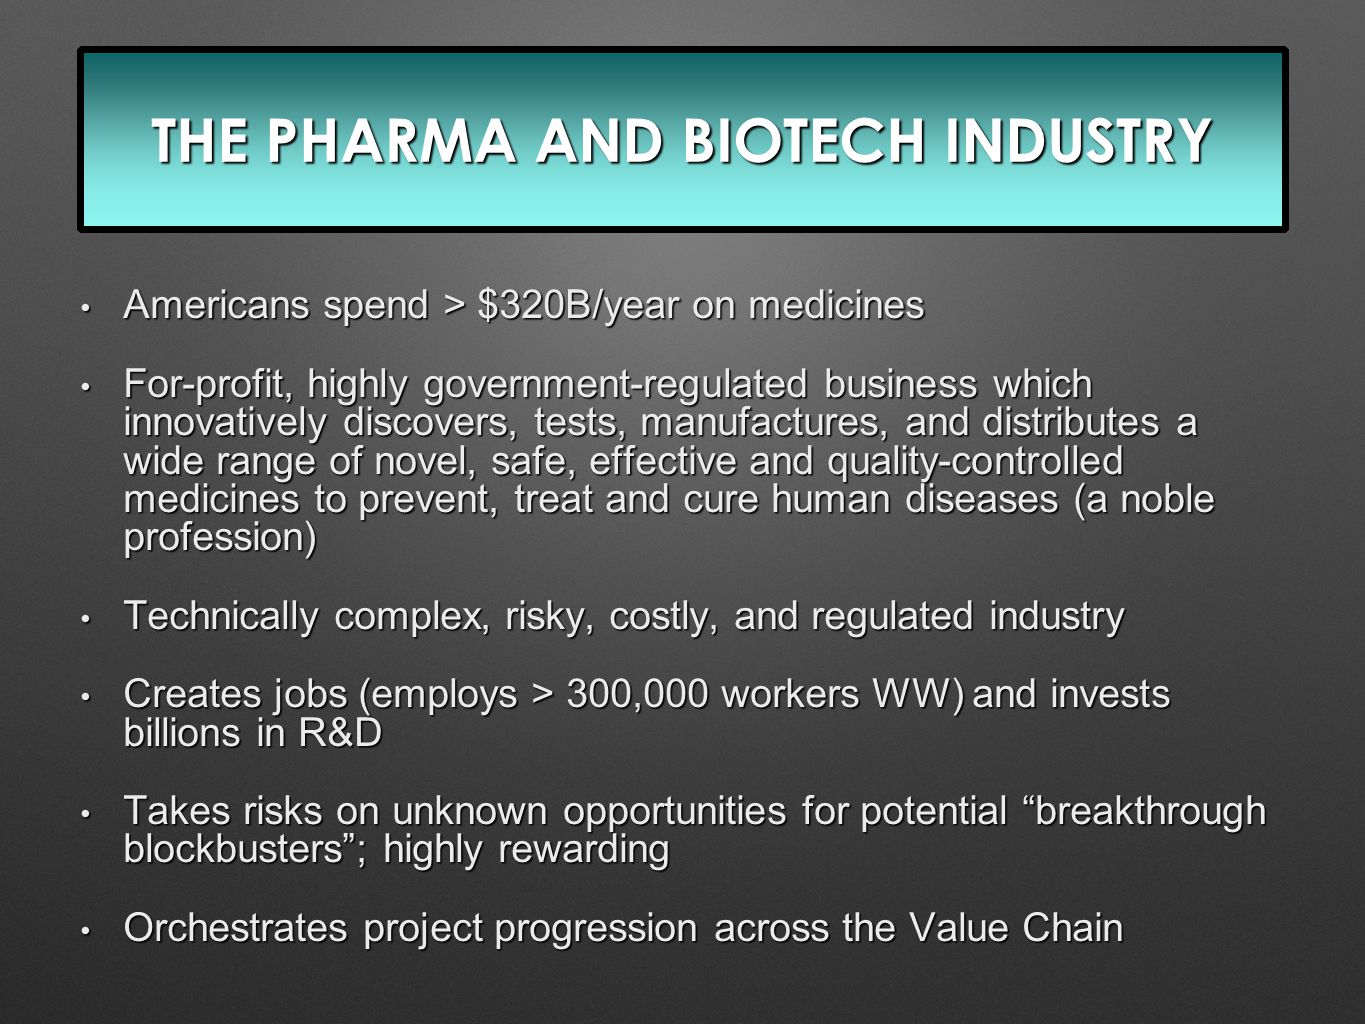 THE PHARMA AND BIOTECH INDUSTRY Americans spend > $320B/year on medicines Americans spend > $320B/year on medicines For-profit, highly government-regulated business which innovatively discovers, tests, manufactures, and distributes a wide range of novel, safe, effective and quality-controlled medicines to prevent, treat and cure human diseases (a noble profession) For-profit, highly government-regulated business which innovatively discovers, tests, manufactures, and distributes a wide range of novel, safe, effective and quality-controlled medicines to prevent, treat and cure human diseases (a noble profession) Technically complex, risky, costly, and regulated industry Technically complex, risky, costly, and regulated industry Creates jobs (employs > 300,000 workers WW) and invests billions in R&D Creates jobs (employs > 300,000 workers WW) and invests billions in R&D Takes risks on unknown opportunities for potential breakthrough blockbusters ; highly rewarding Takes risks on unknown opportunities for potential breakthrough blockbusters ; highly rewarding Orchestrates project progression across the Value Chain Orchestrates project progression across the Value Chain